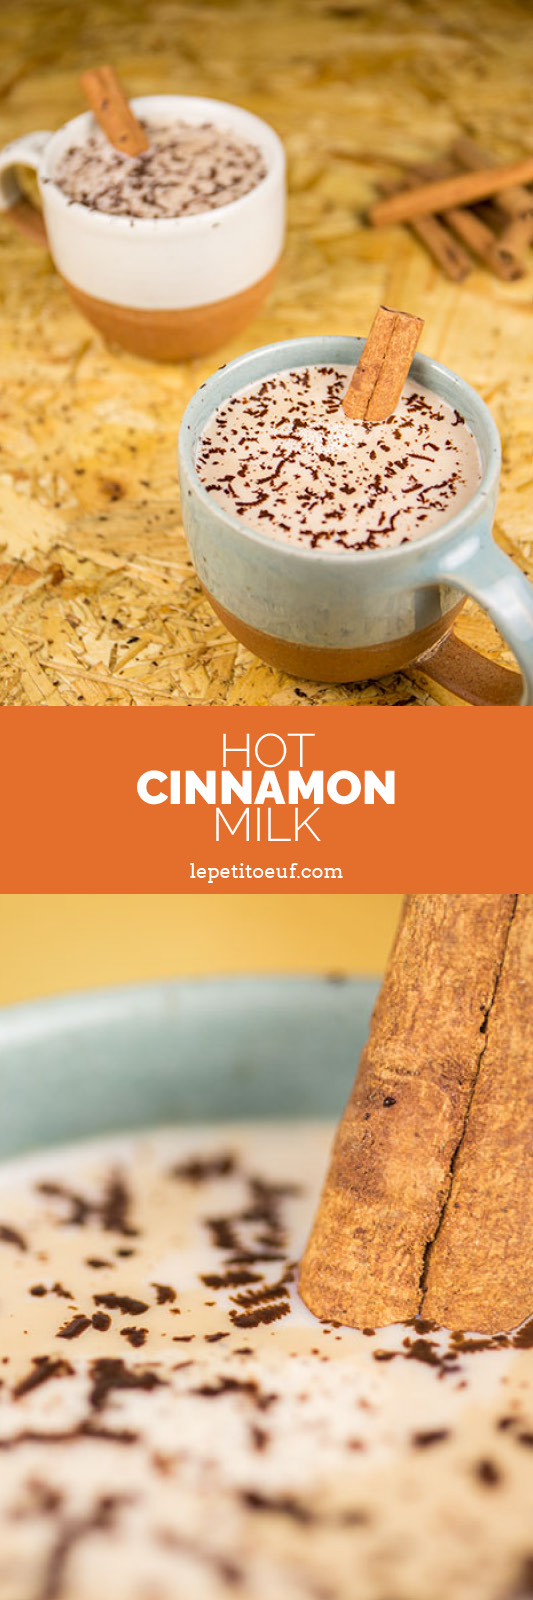 hot cinnamon milk